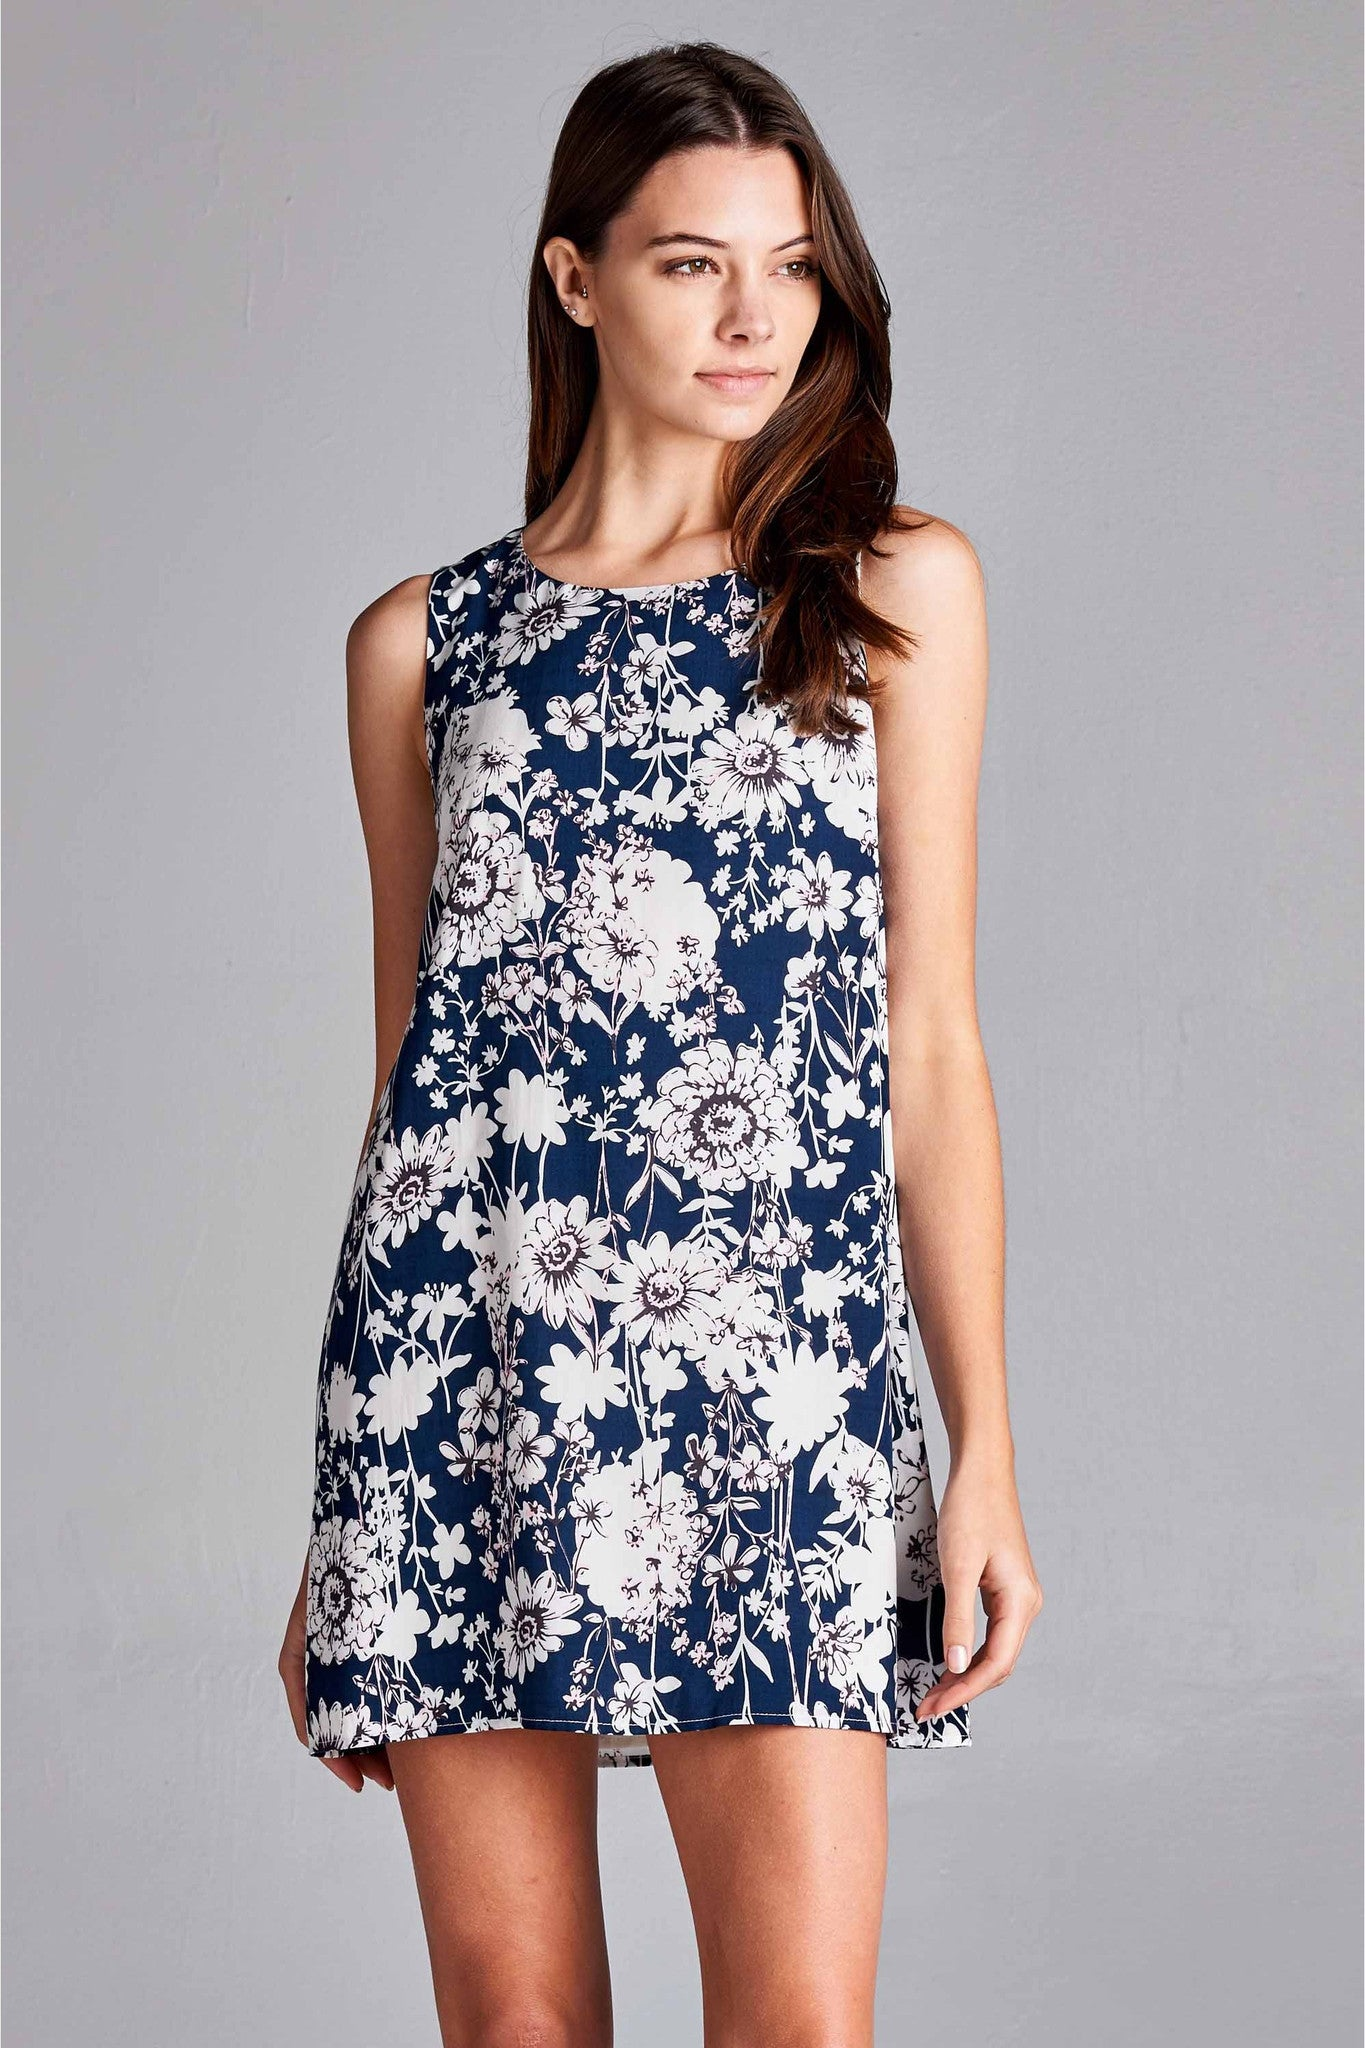 Floral Garden Dress - Navy Pink & White